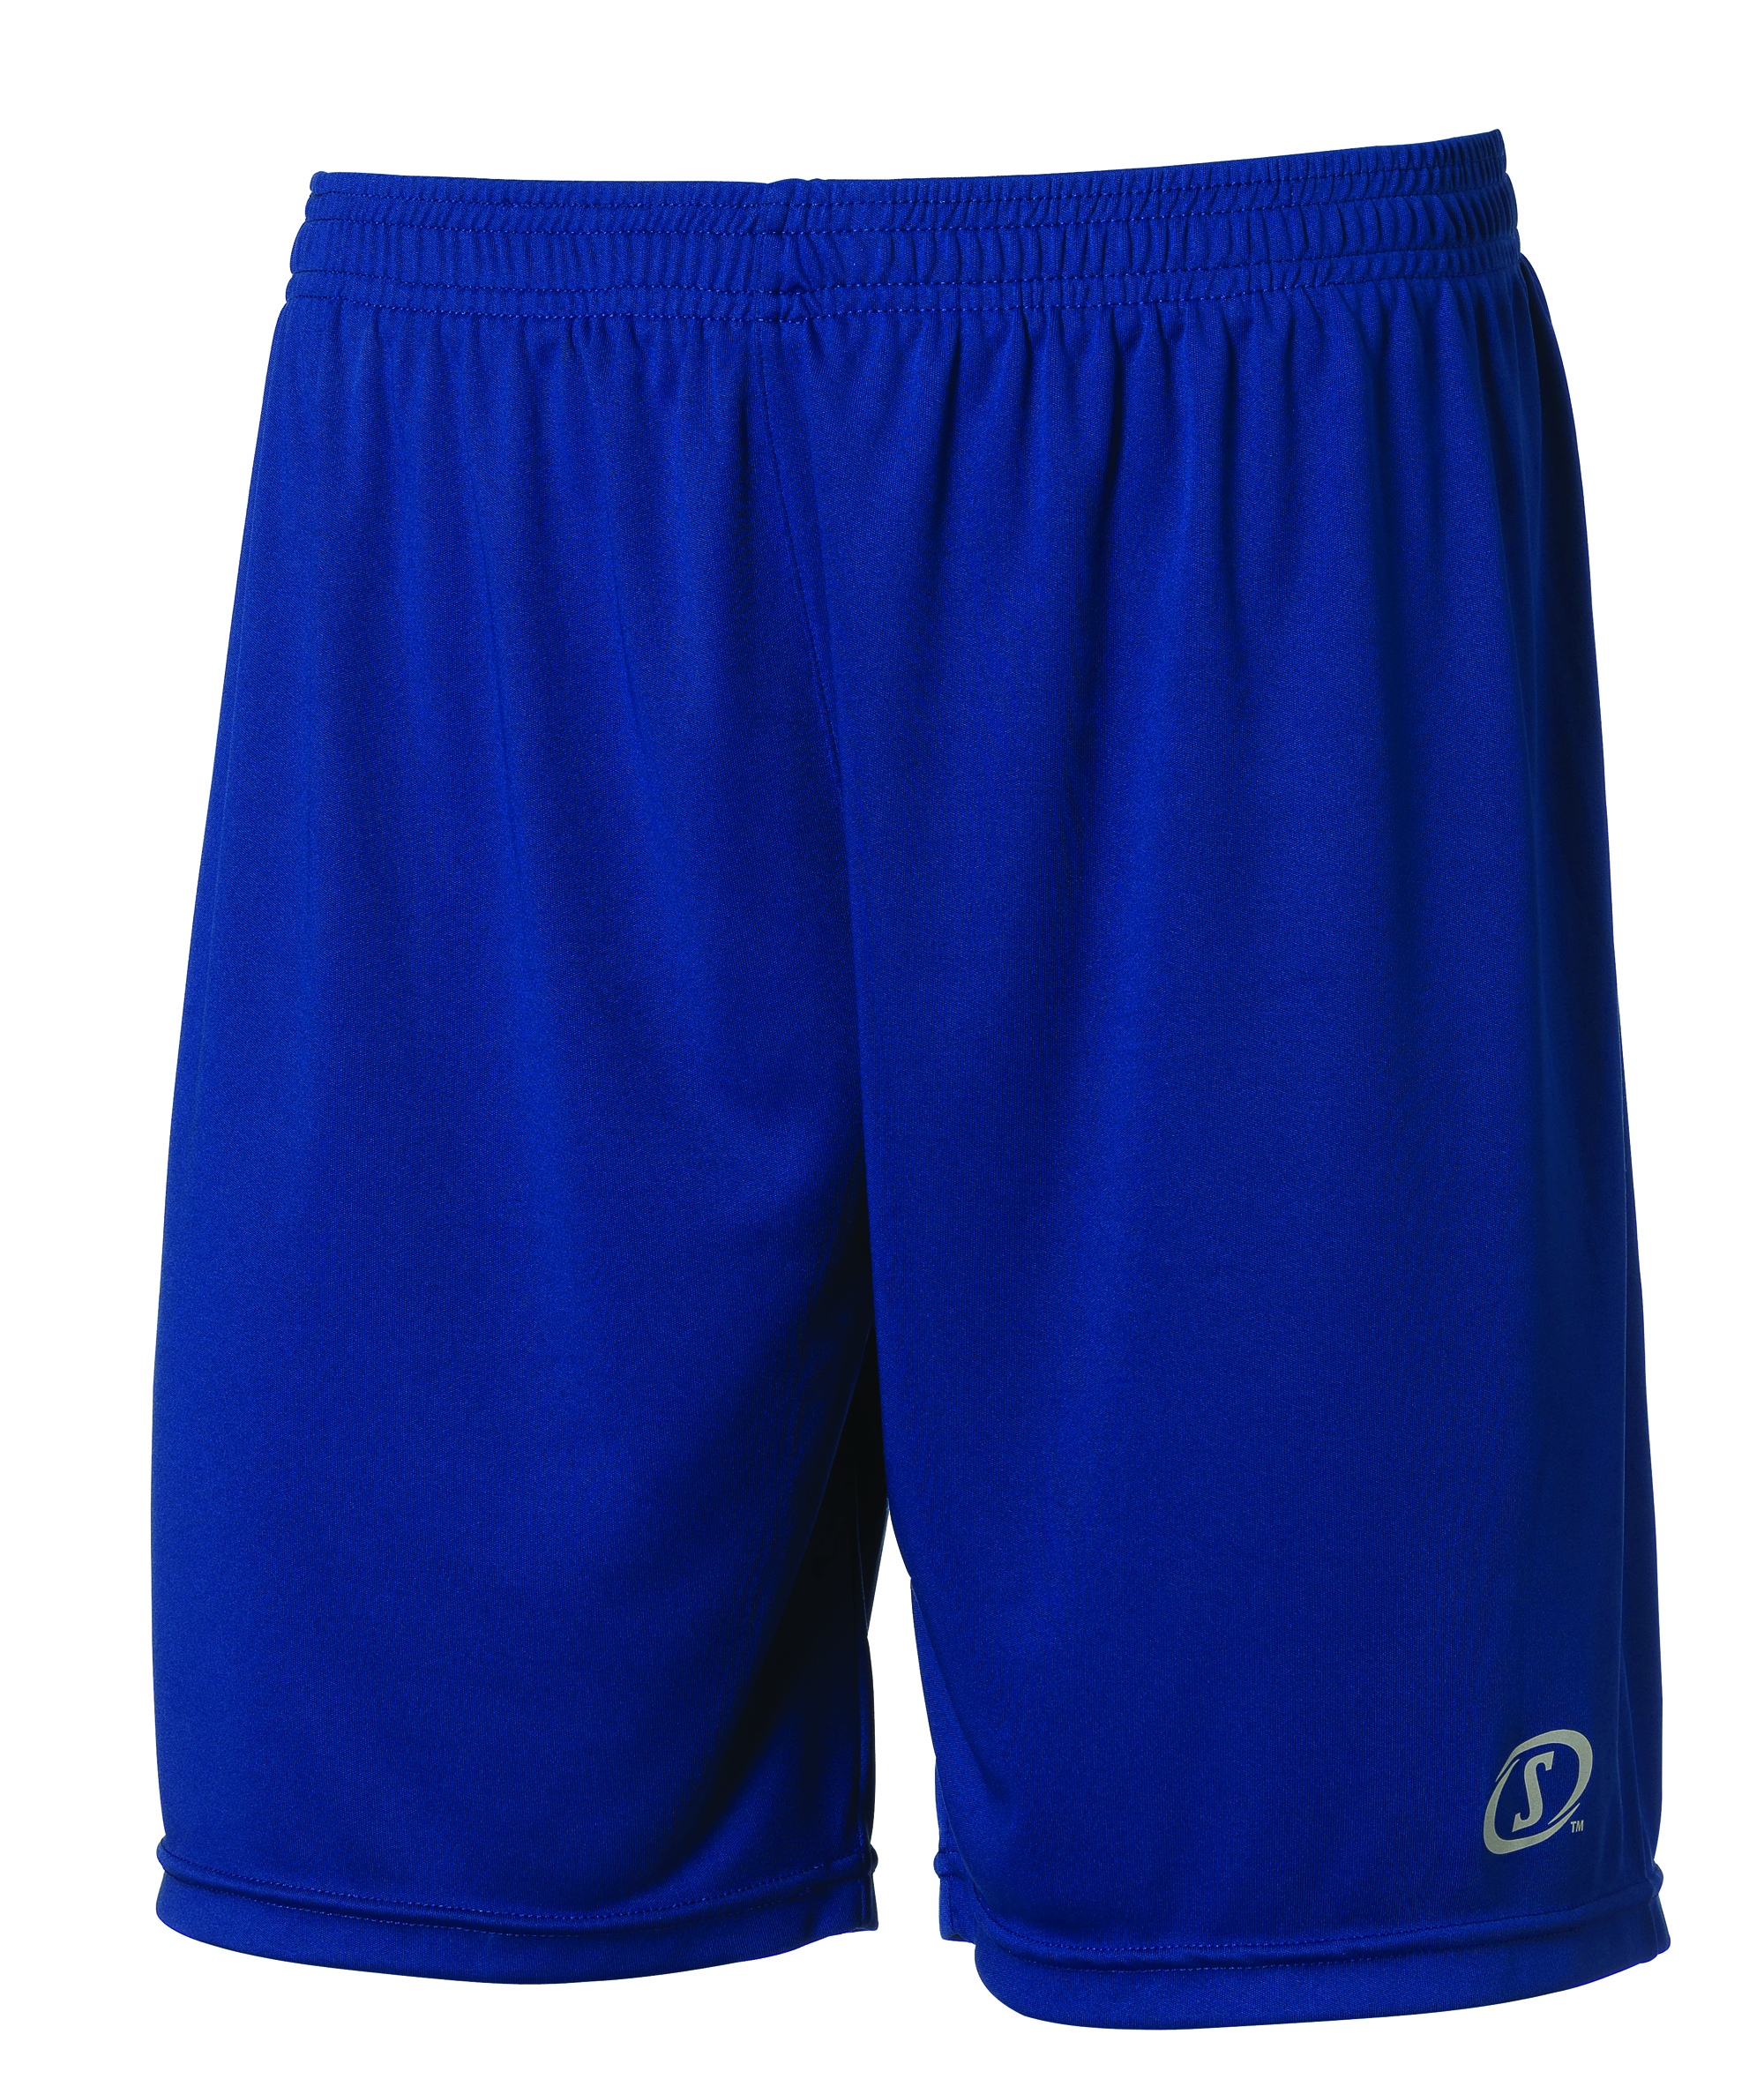 Core Training Shorts - Royal - S